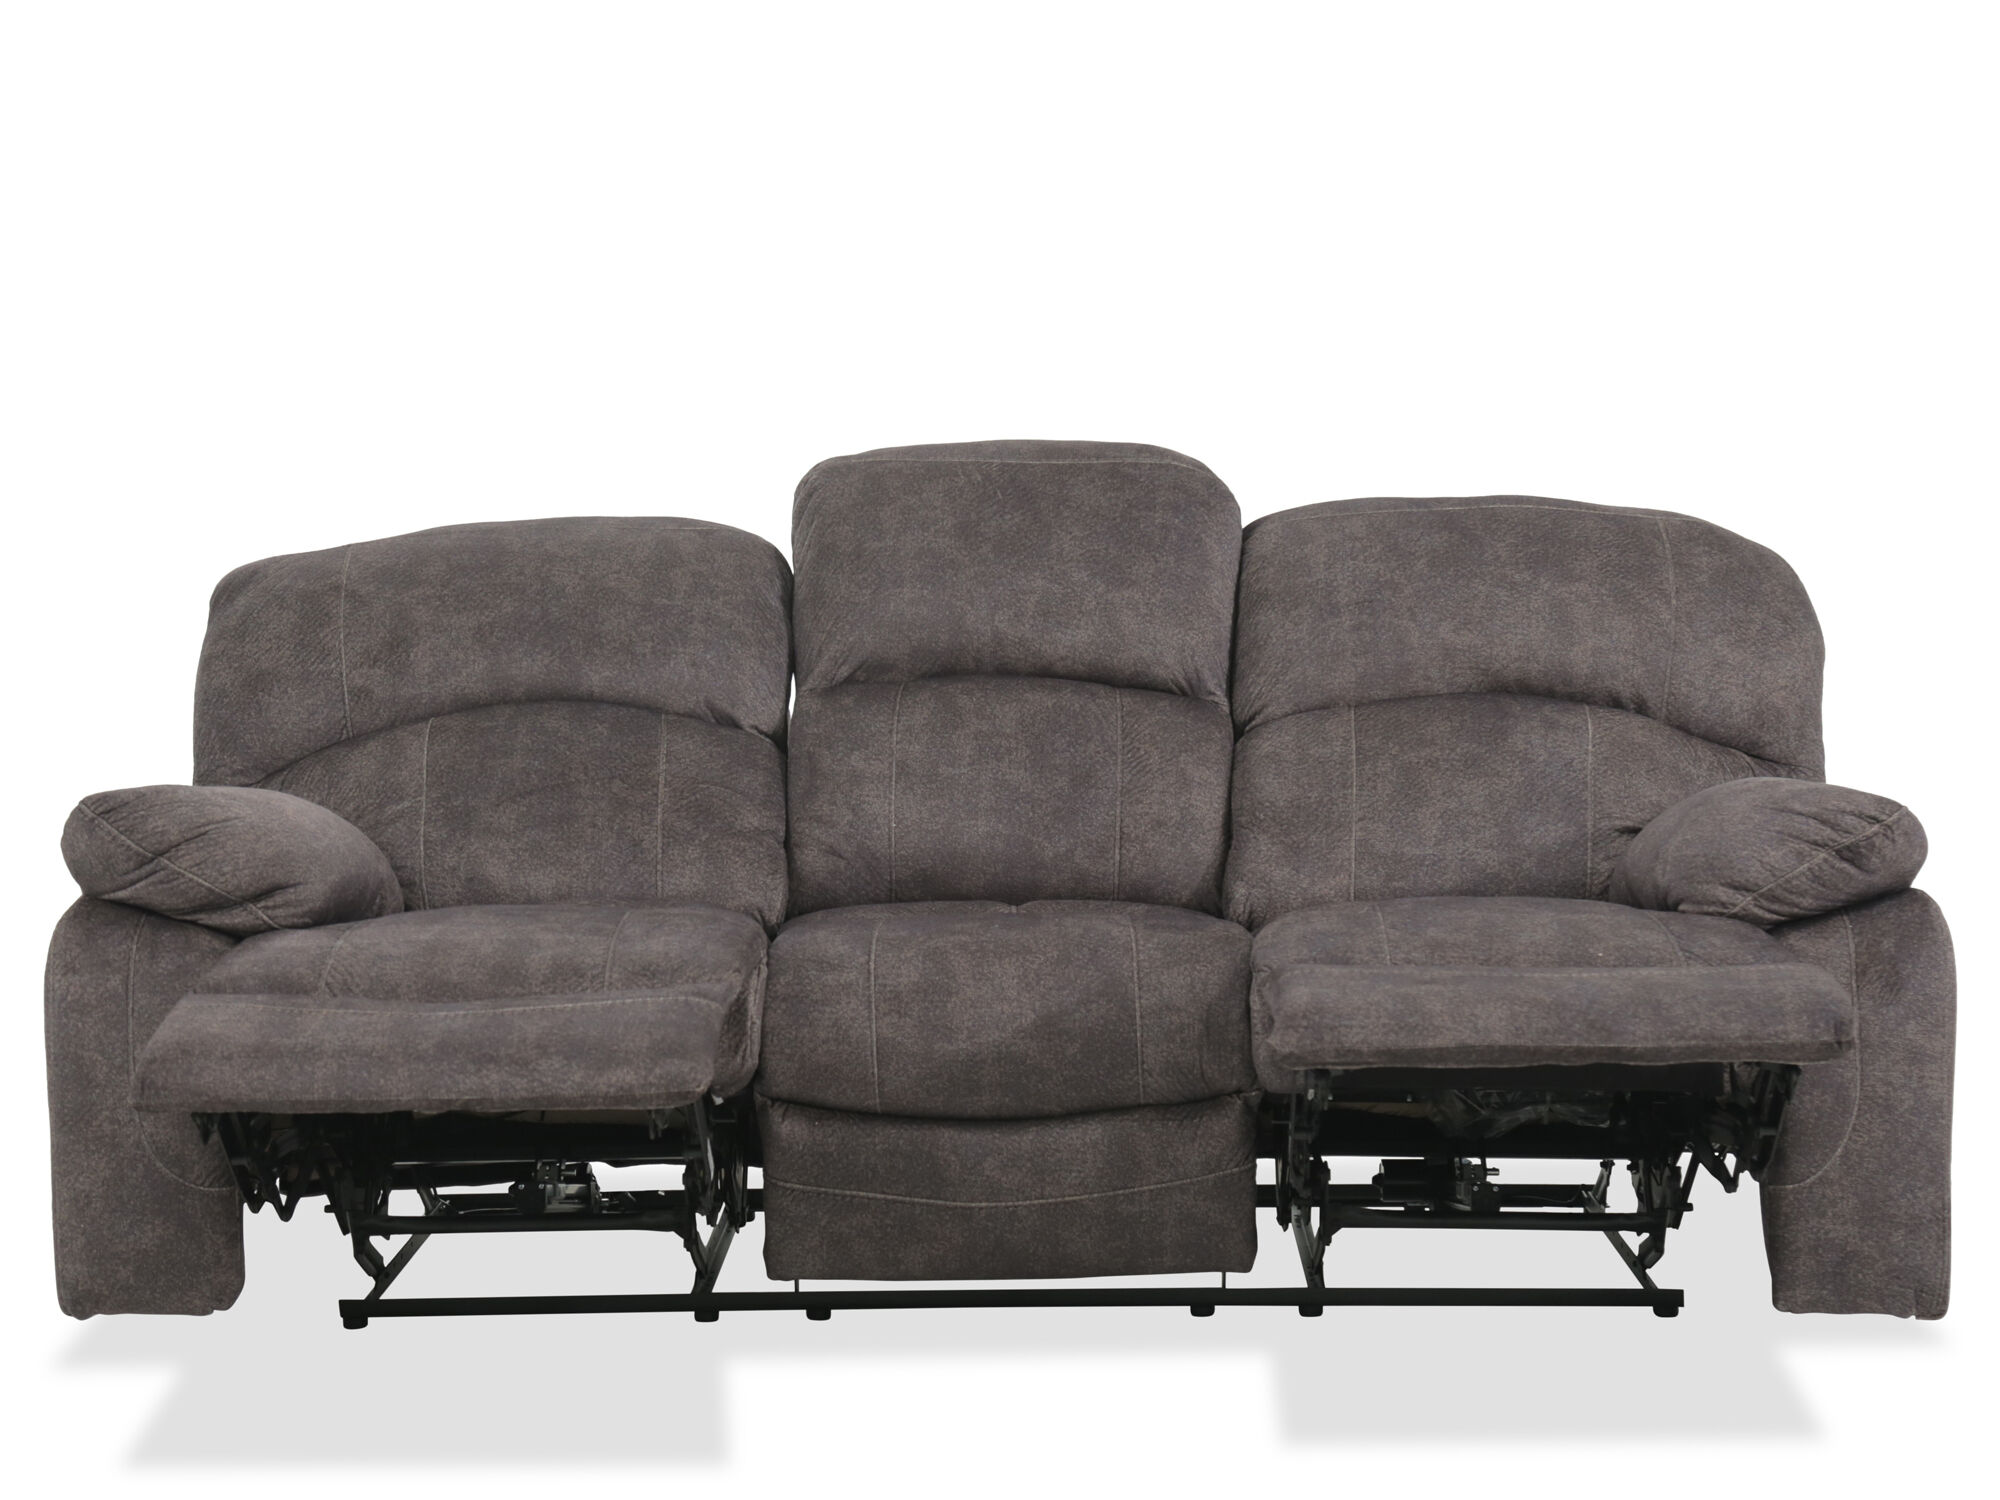 87 Reclining Sofa With Usb Charging Station In Gray Mathis Brothers Furniture